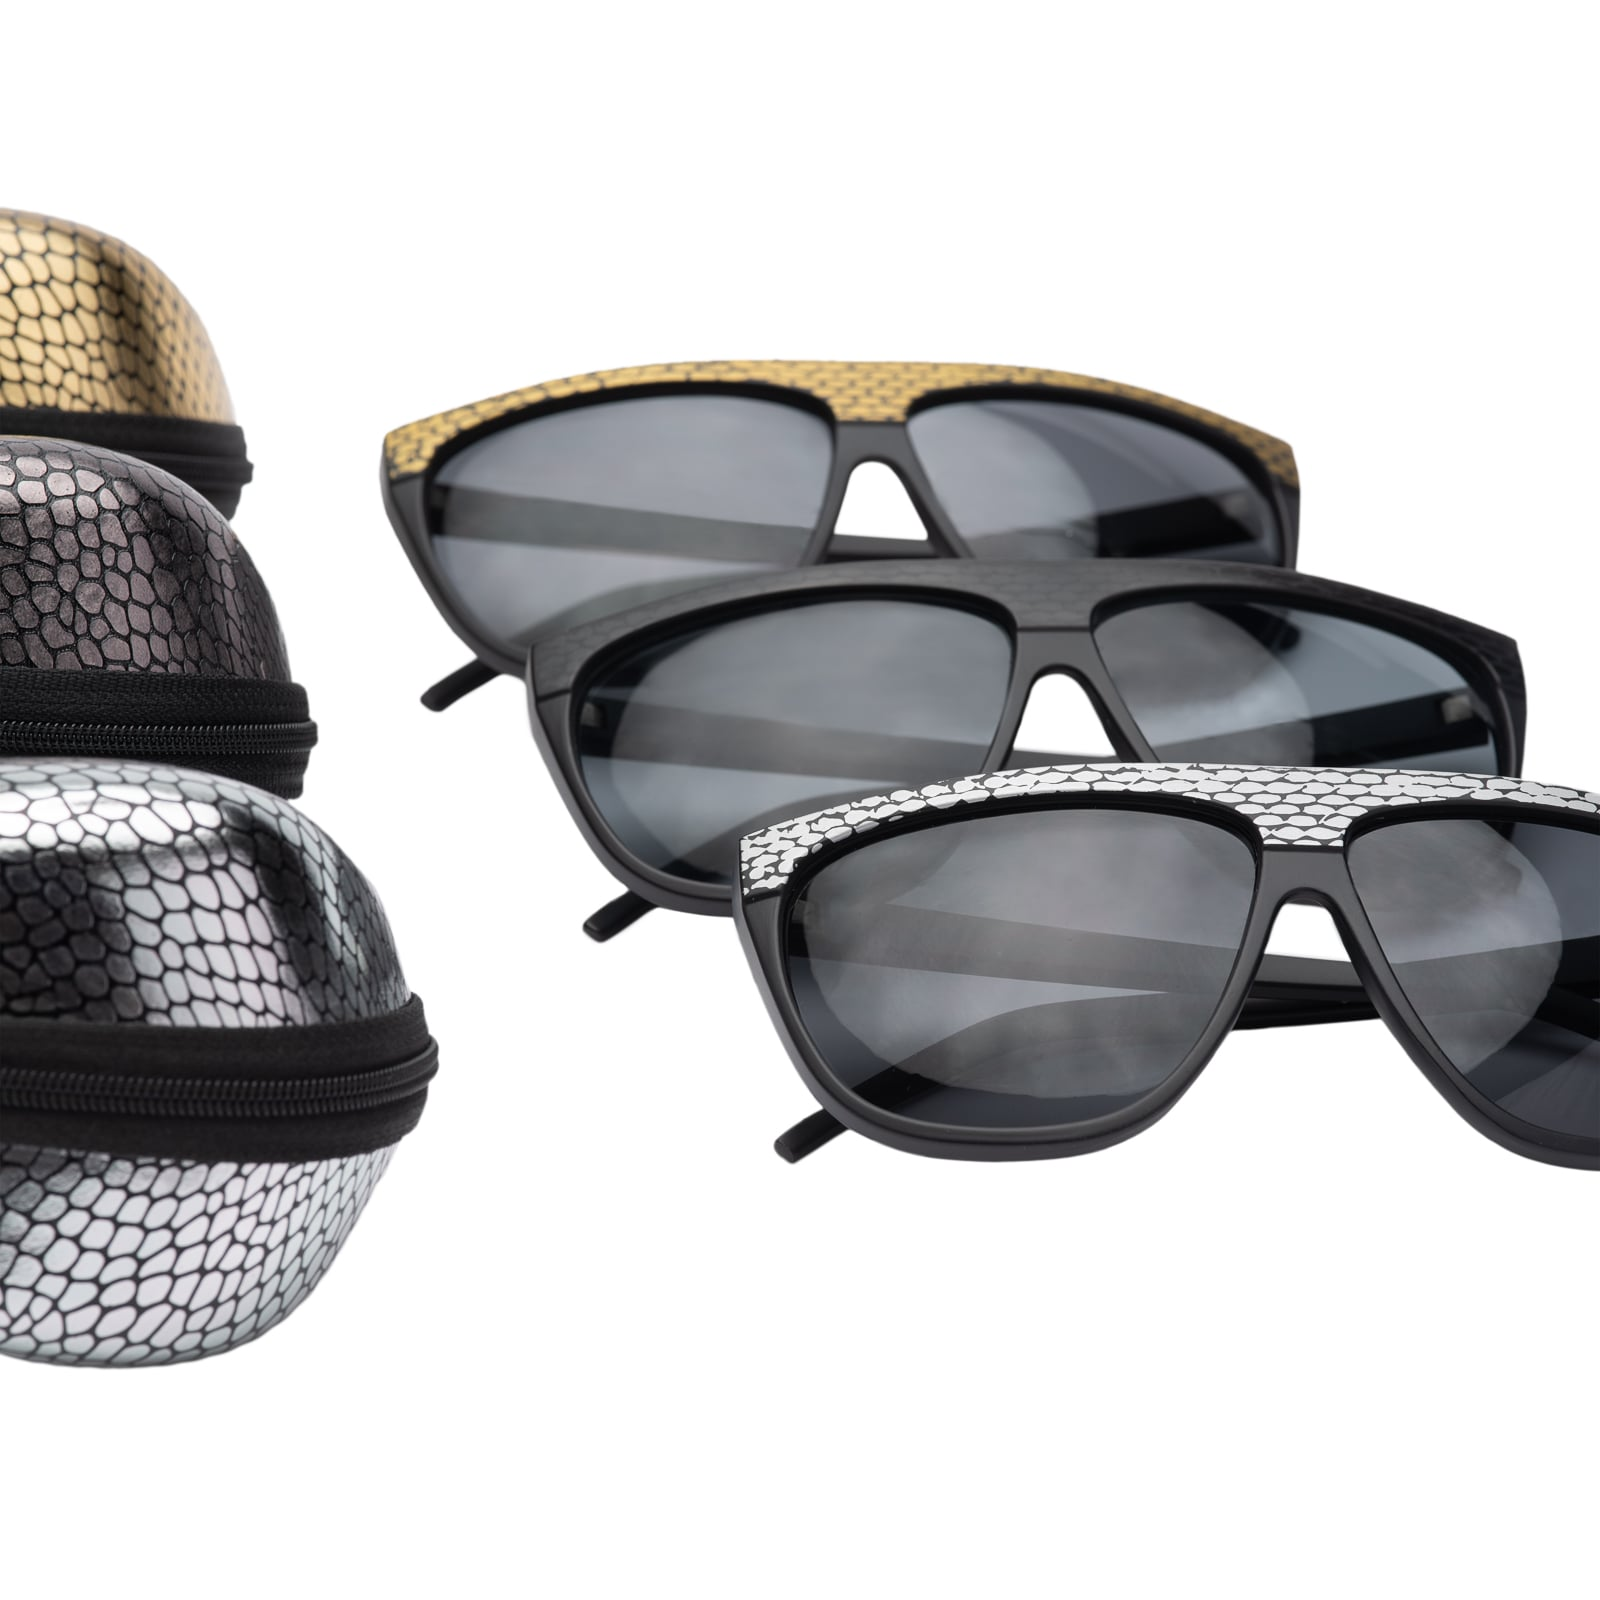 Taylor Swift Reputation Sunglasses If Your Girl S Got A Big Reputation For Loving Taylor Swift She Ll Love These Fashion Gifts Popsugar Fashion Photo 11